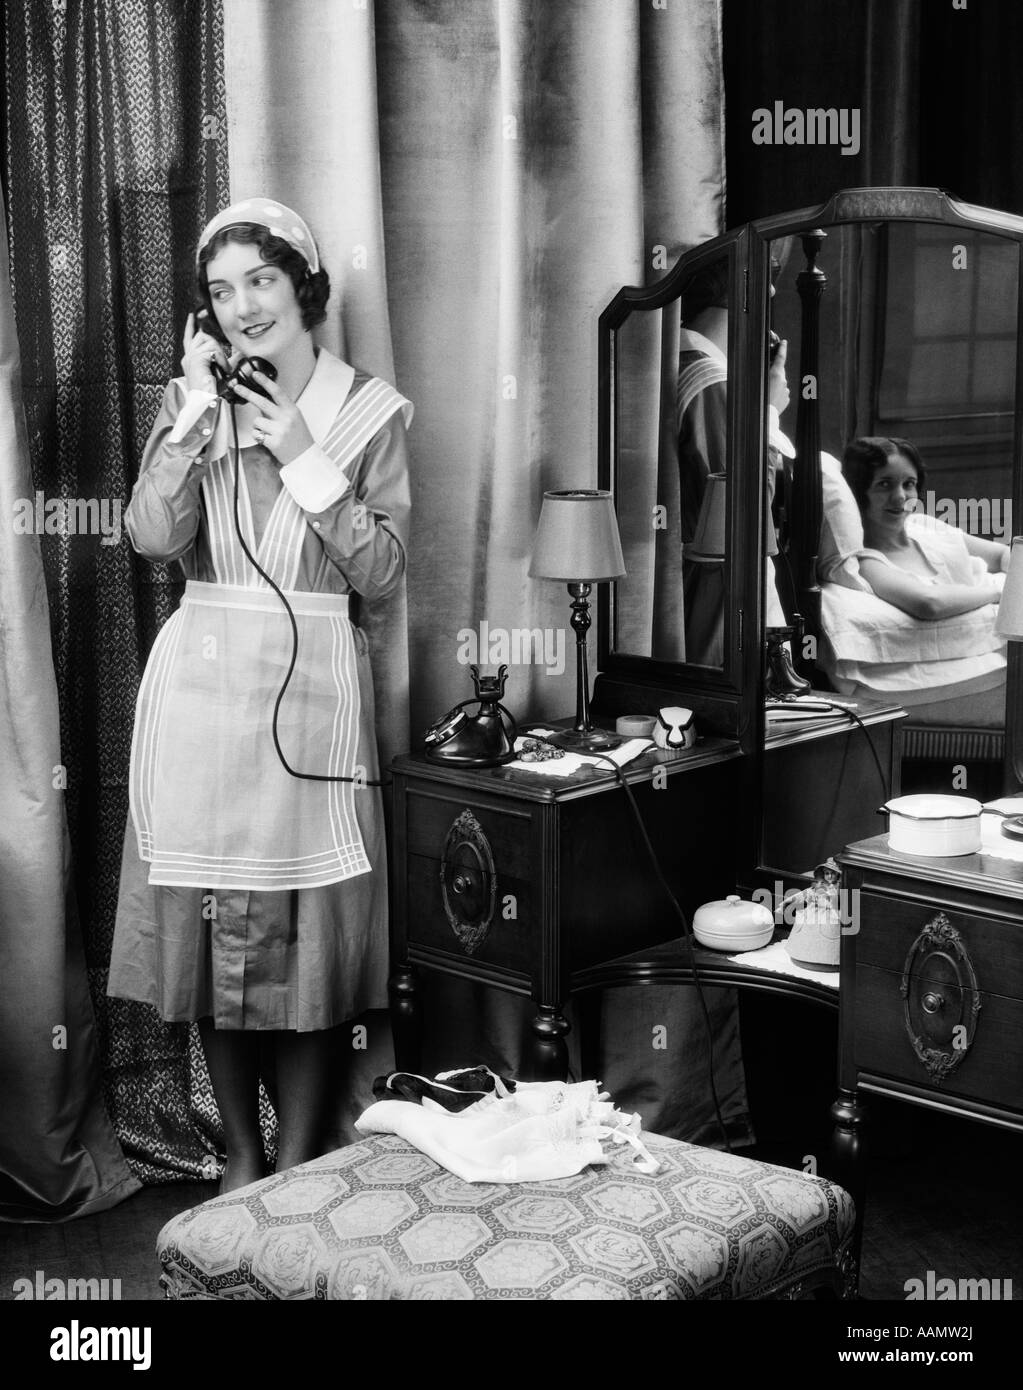 1920s 1930s MAID IN UNIFORM TALKS ON TELEPHONE IN FRONT OF VANITY DRESSING TABLE OTHER WOMAN IS SEEN AS REFLECTION - Stock Image